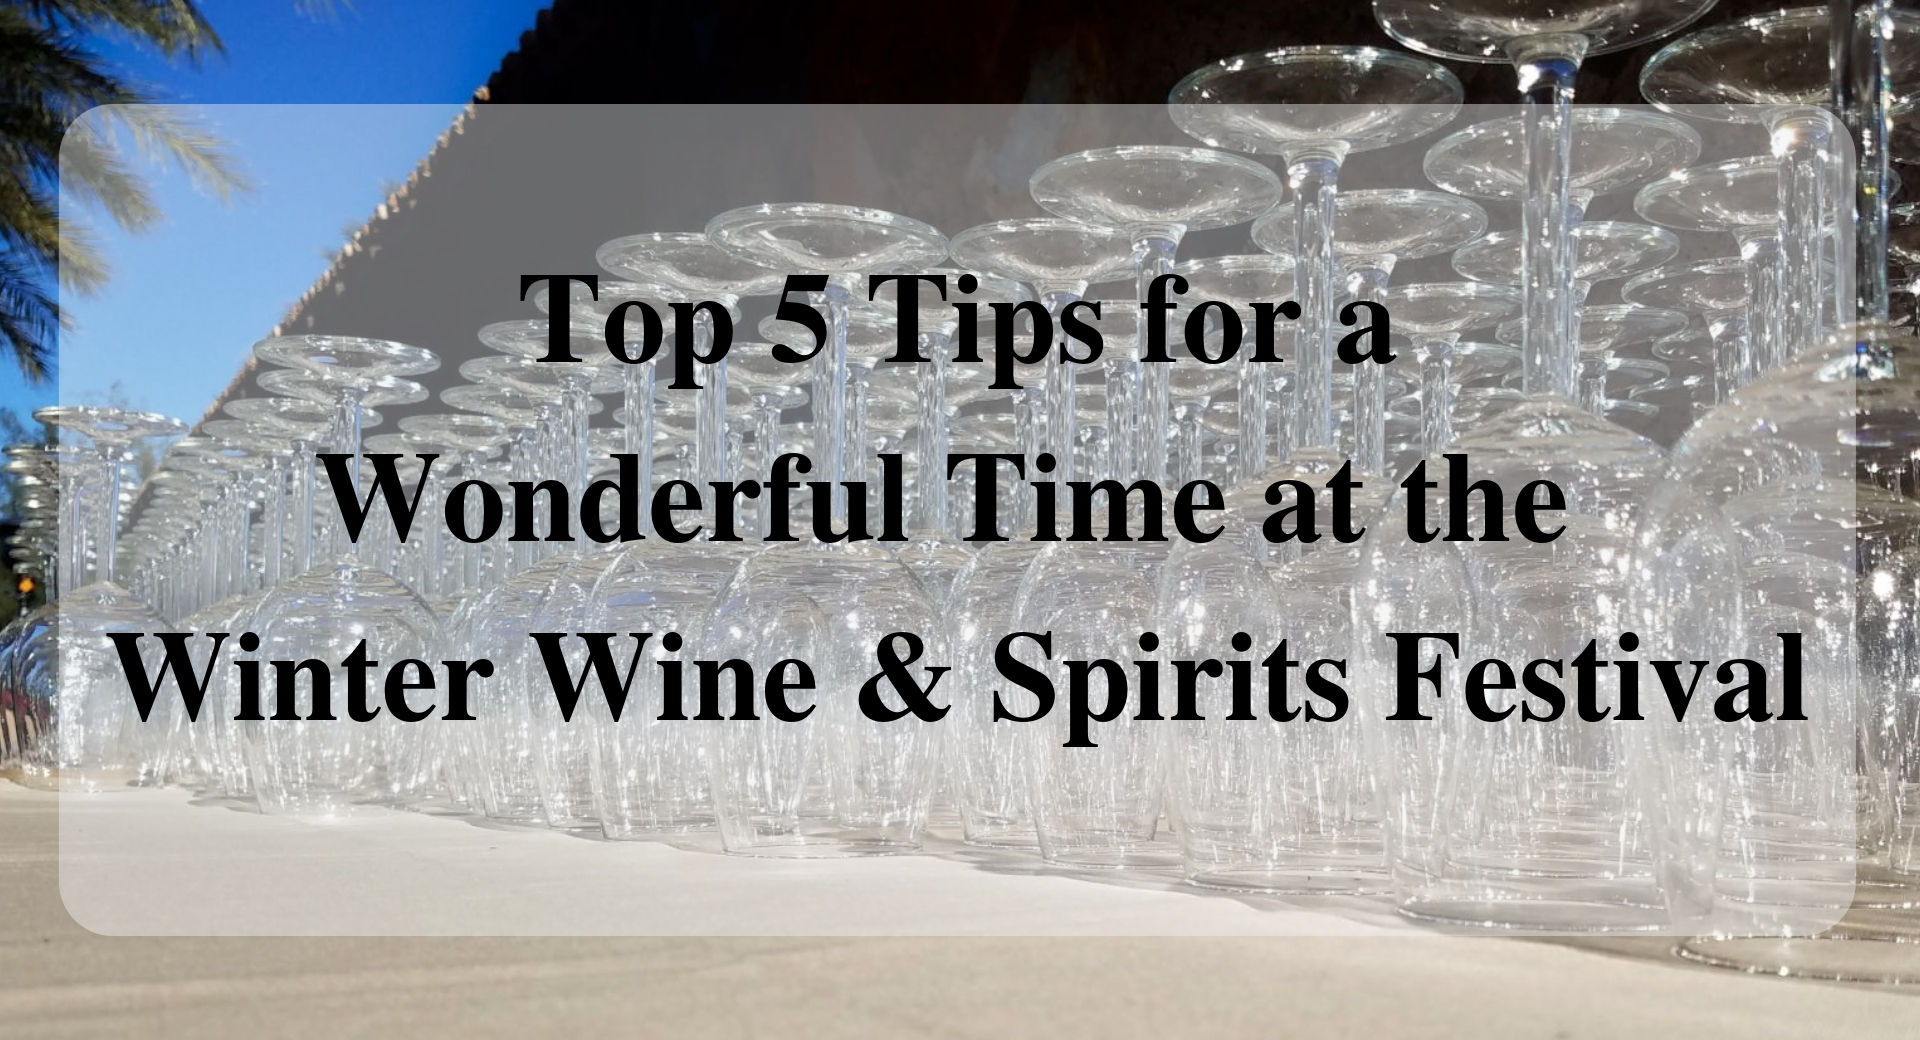 Top 5 Tips for a Wonderful Time at the Winter Wine & Spirits Festival